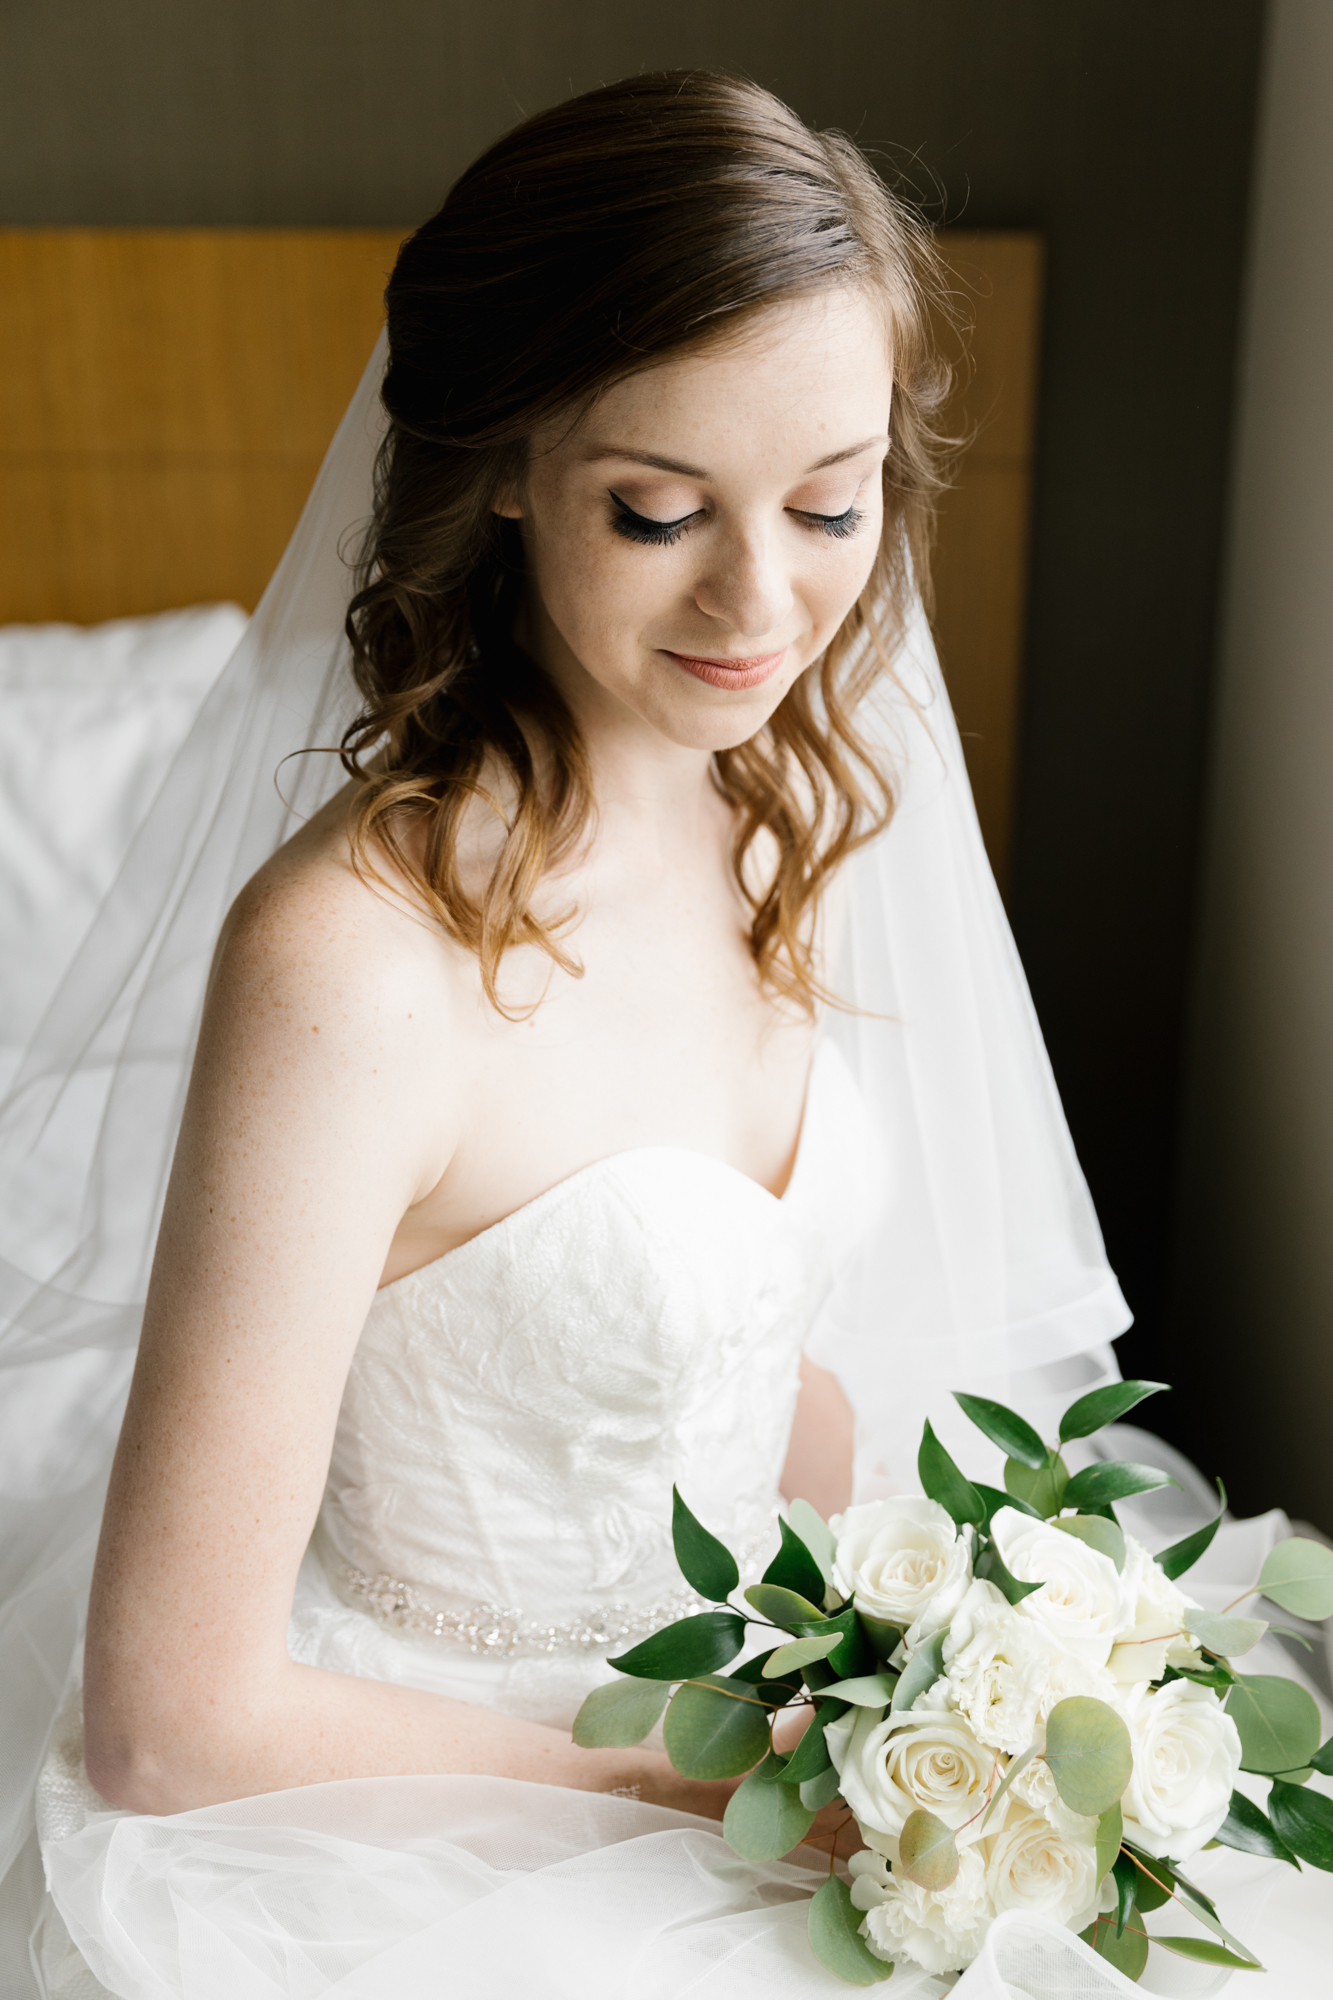 A photo of a bride getting ready for her wedding at the Indiana Memorial Union at Indiana University in Bloomington, Indiana.